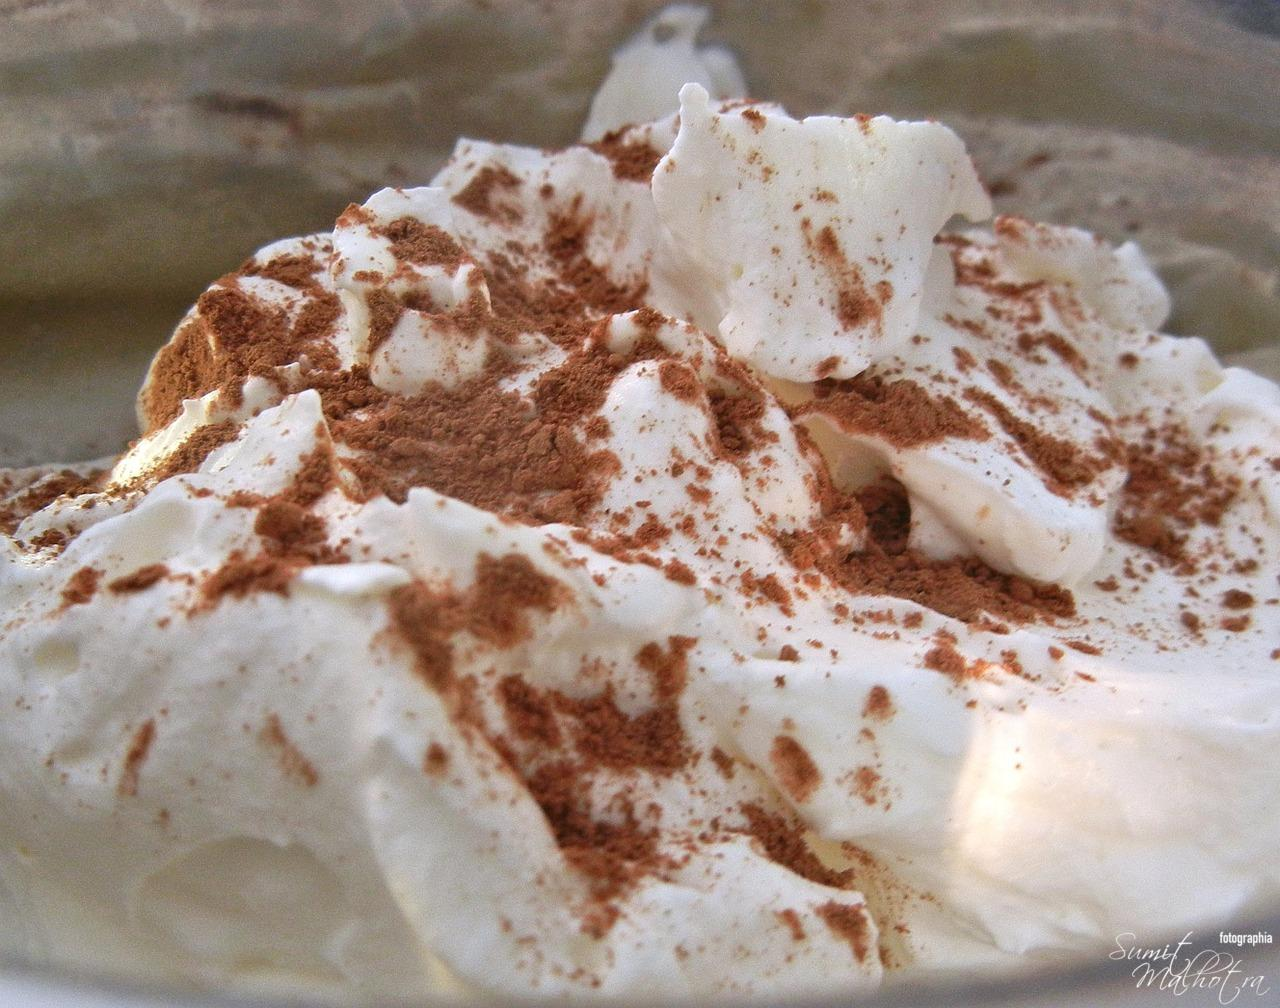 Chocolate Whipped Cream